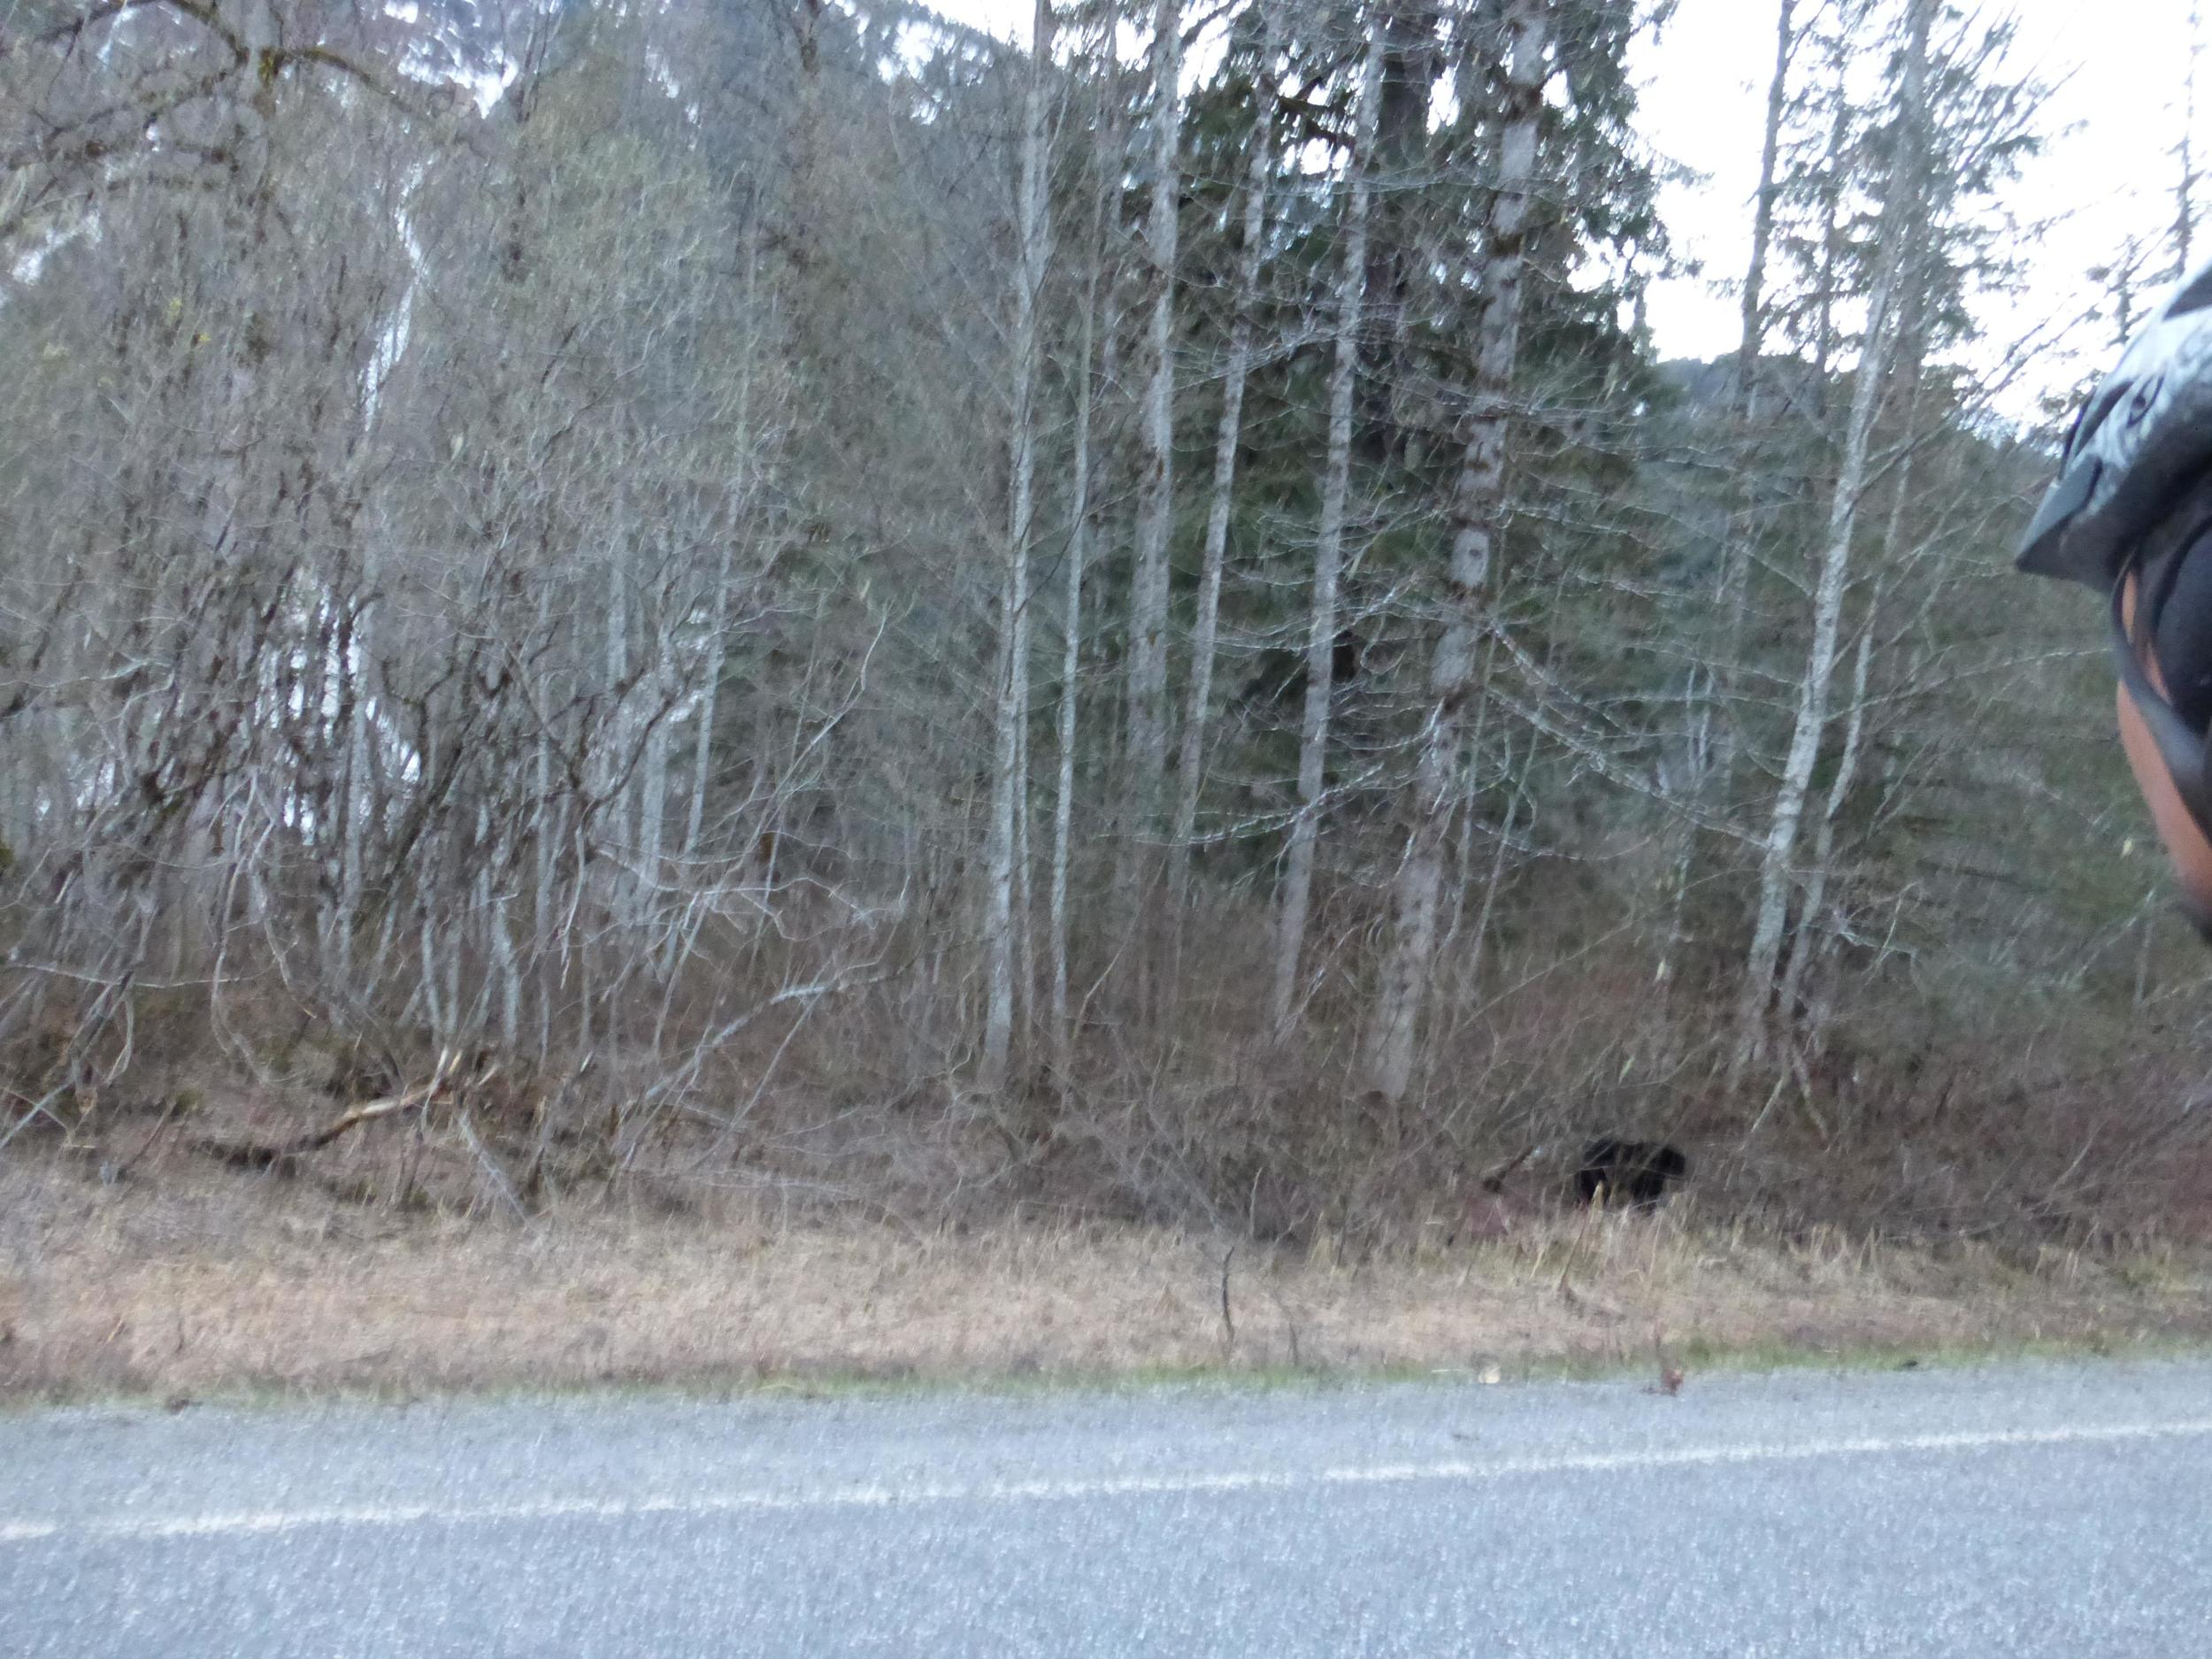 That's #3, he/she was chilling in the bush, I thought I passed it when I turned around and it was right there.